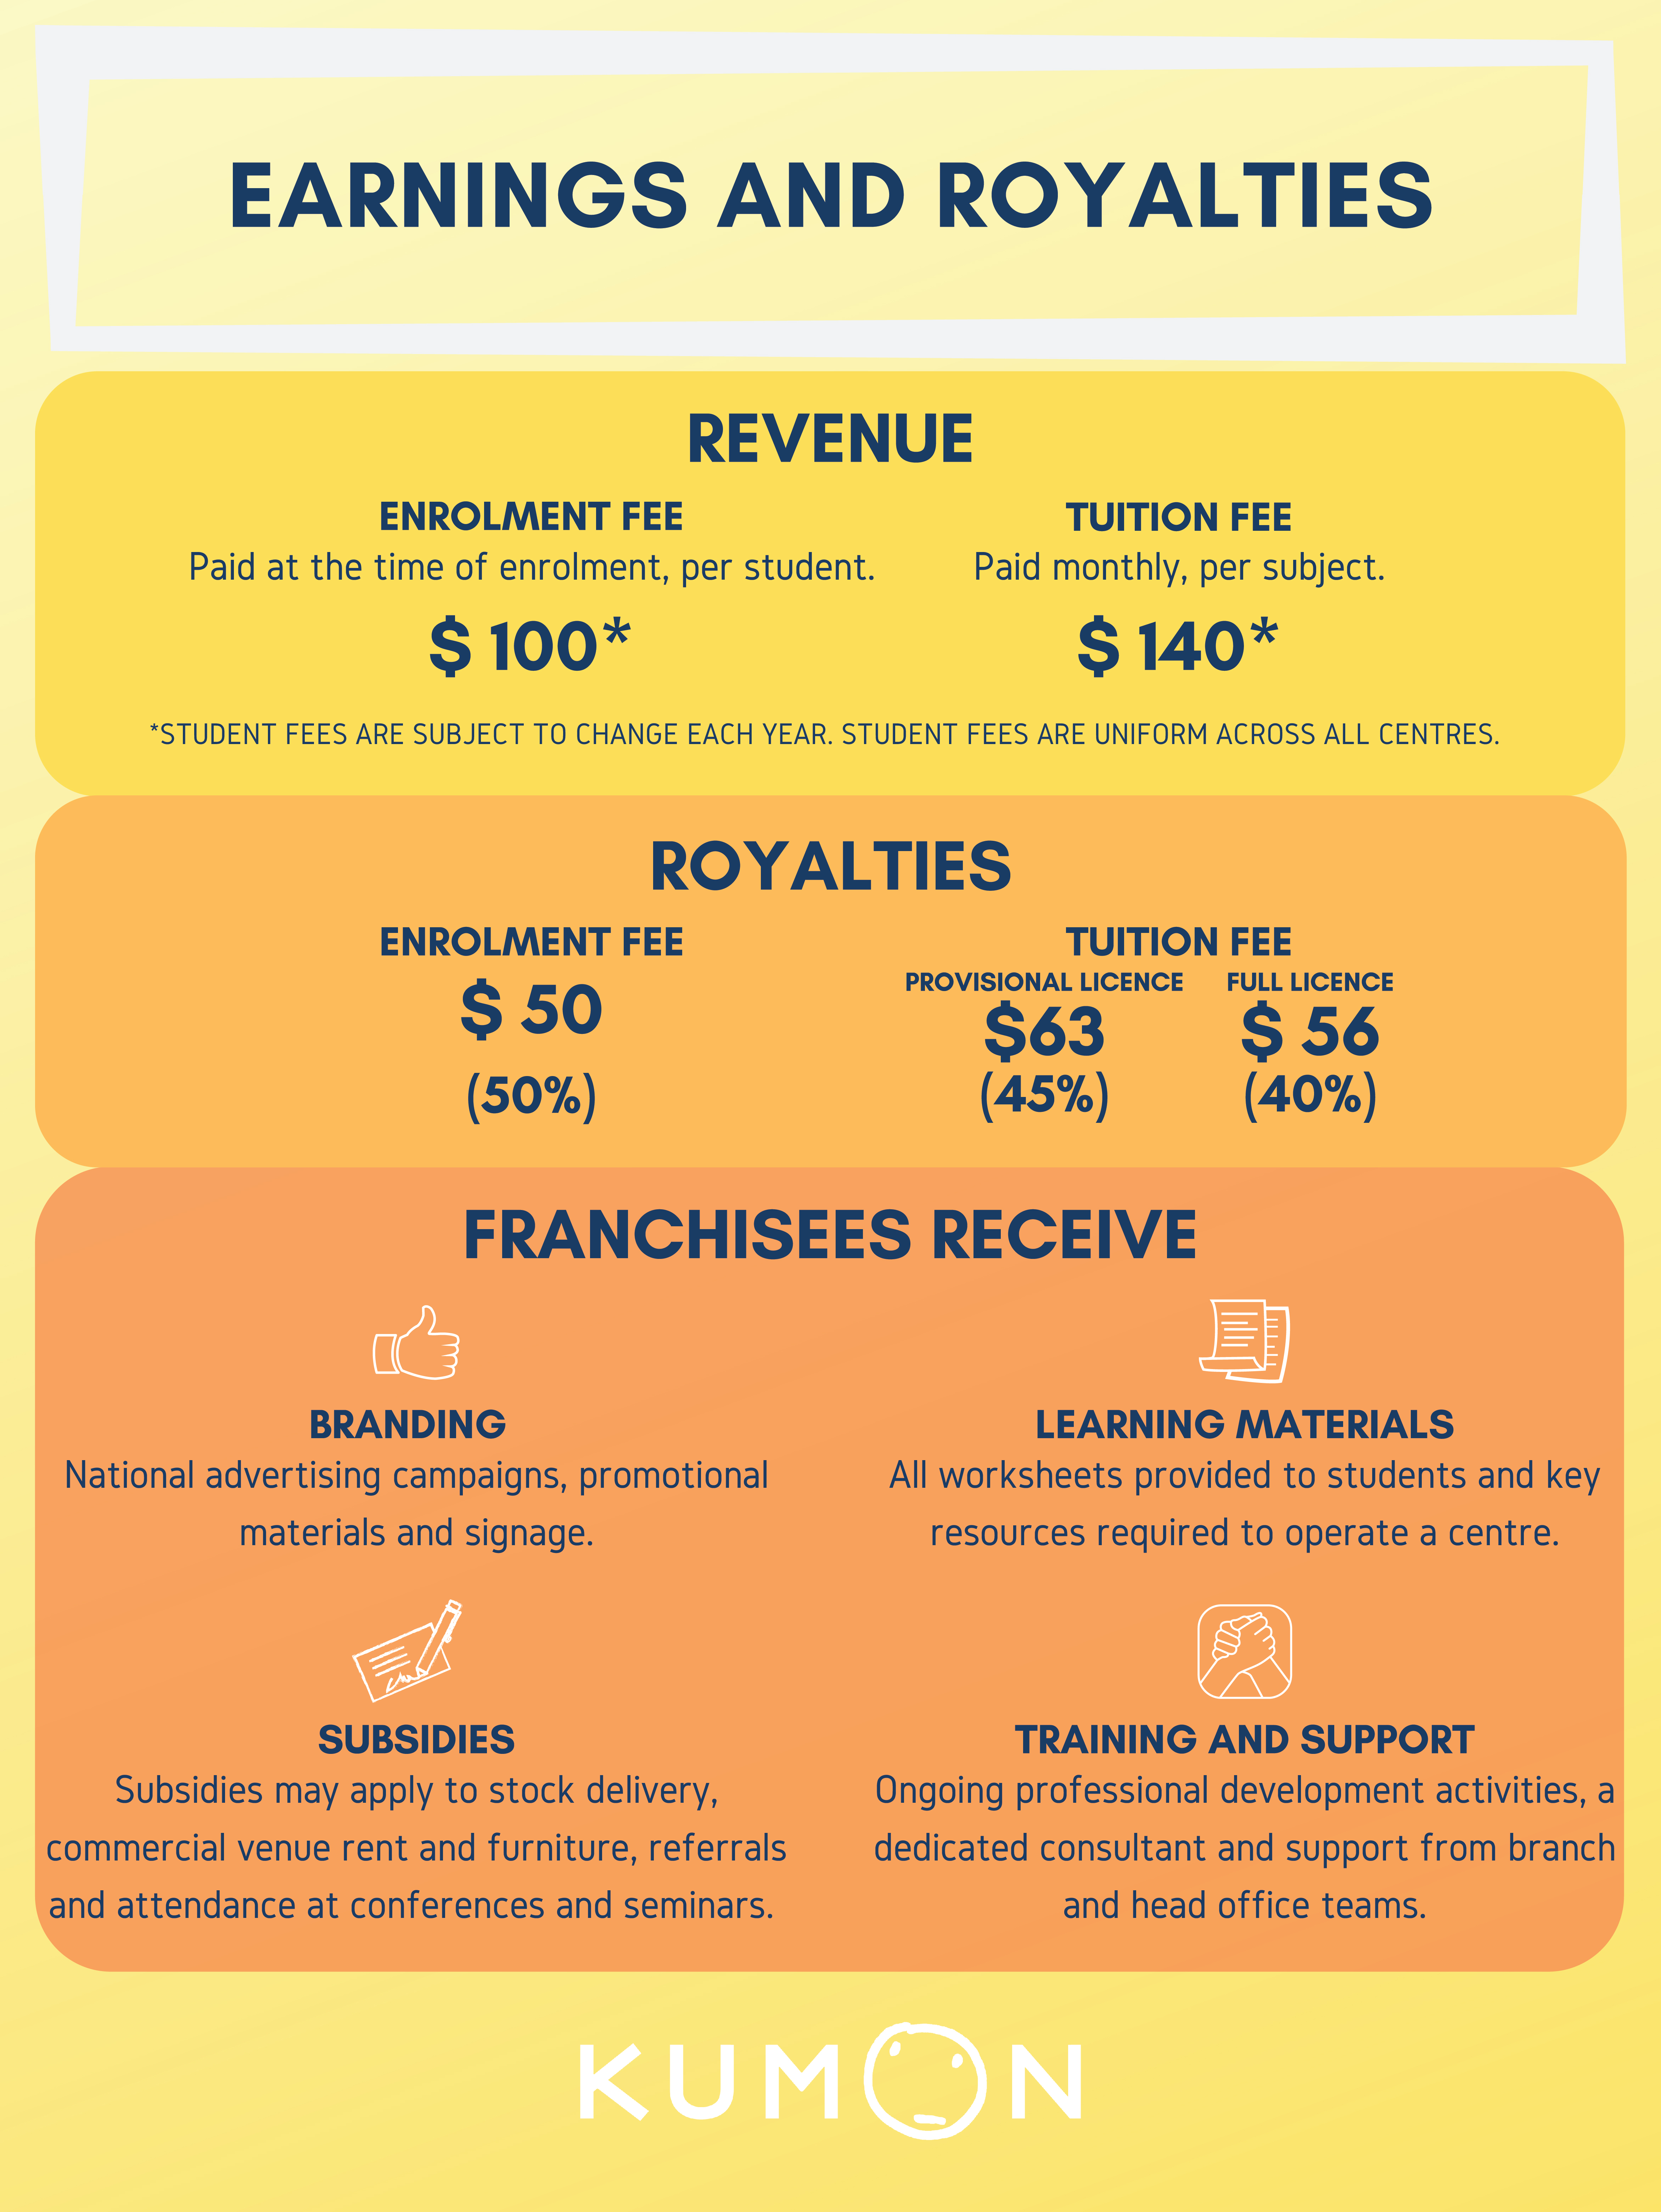 Earnings-and-royalties-infographic